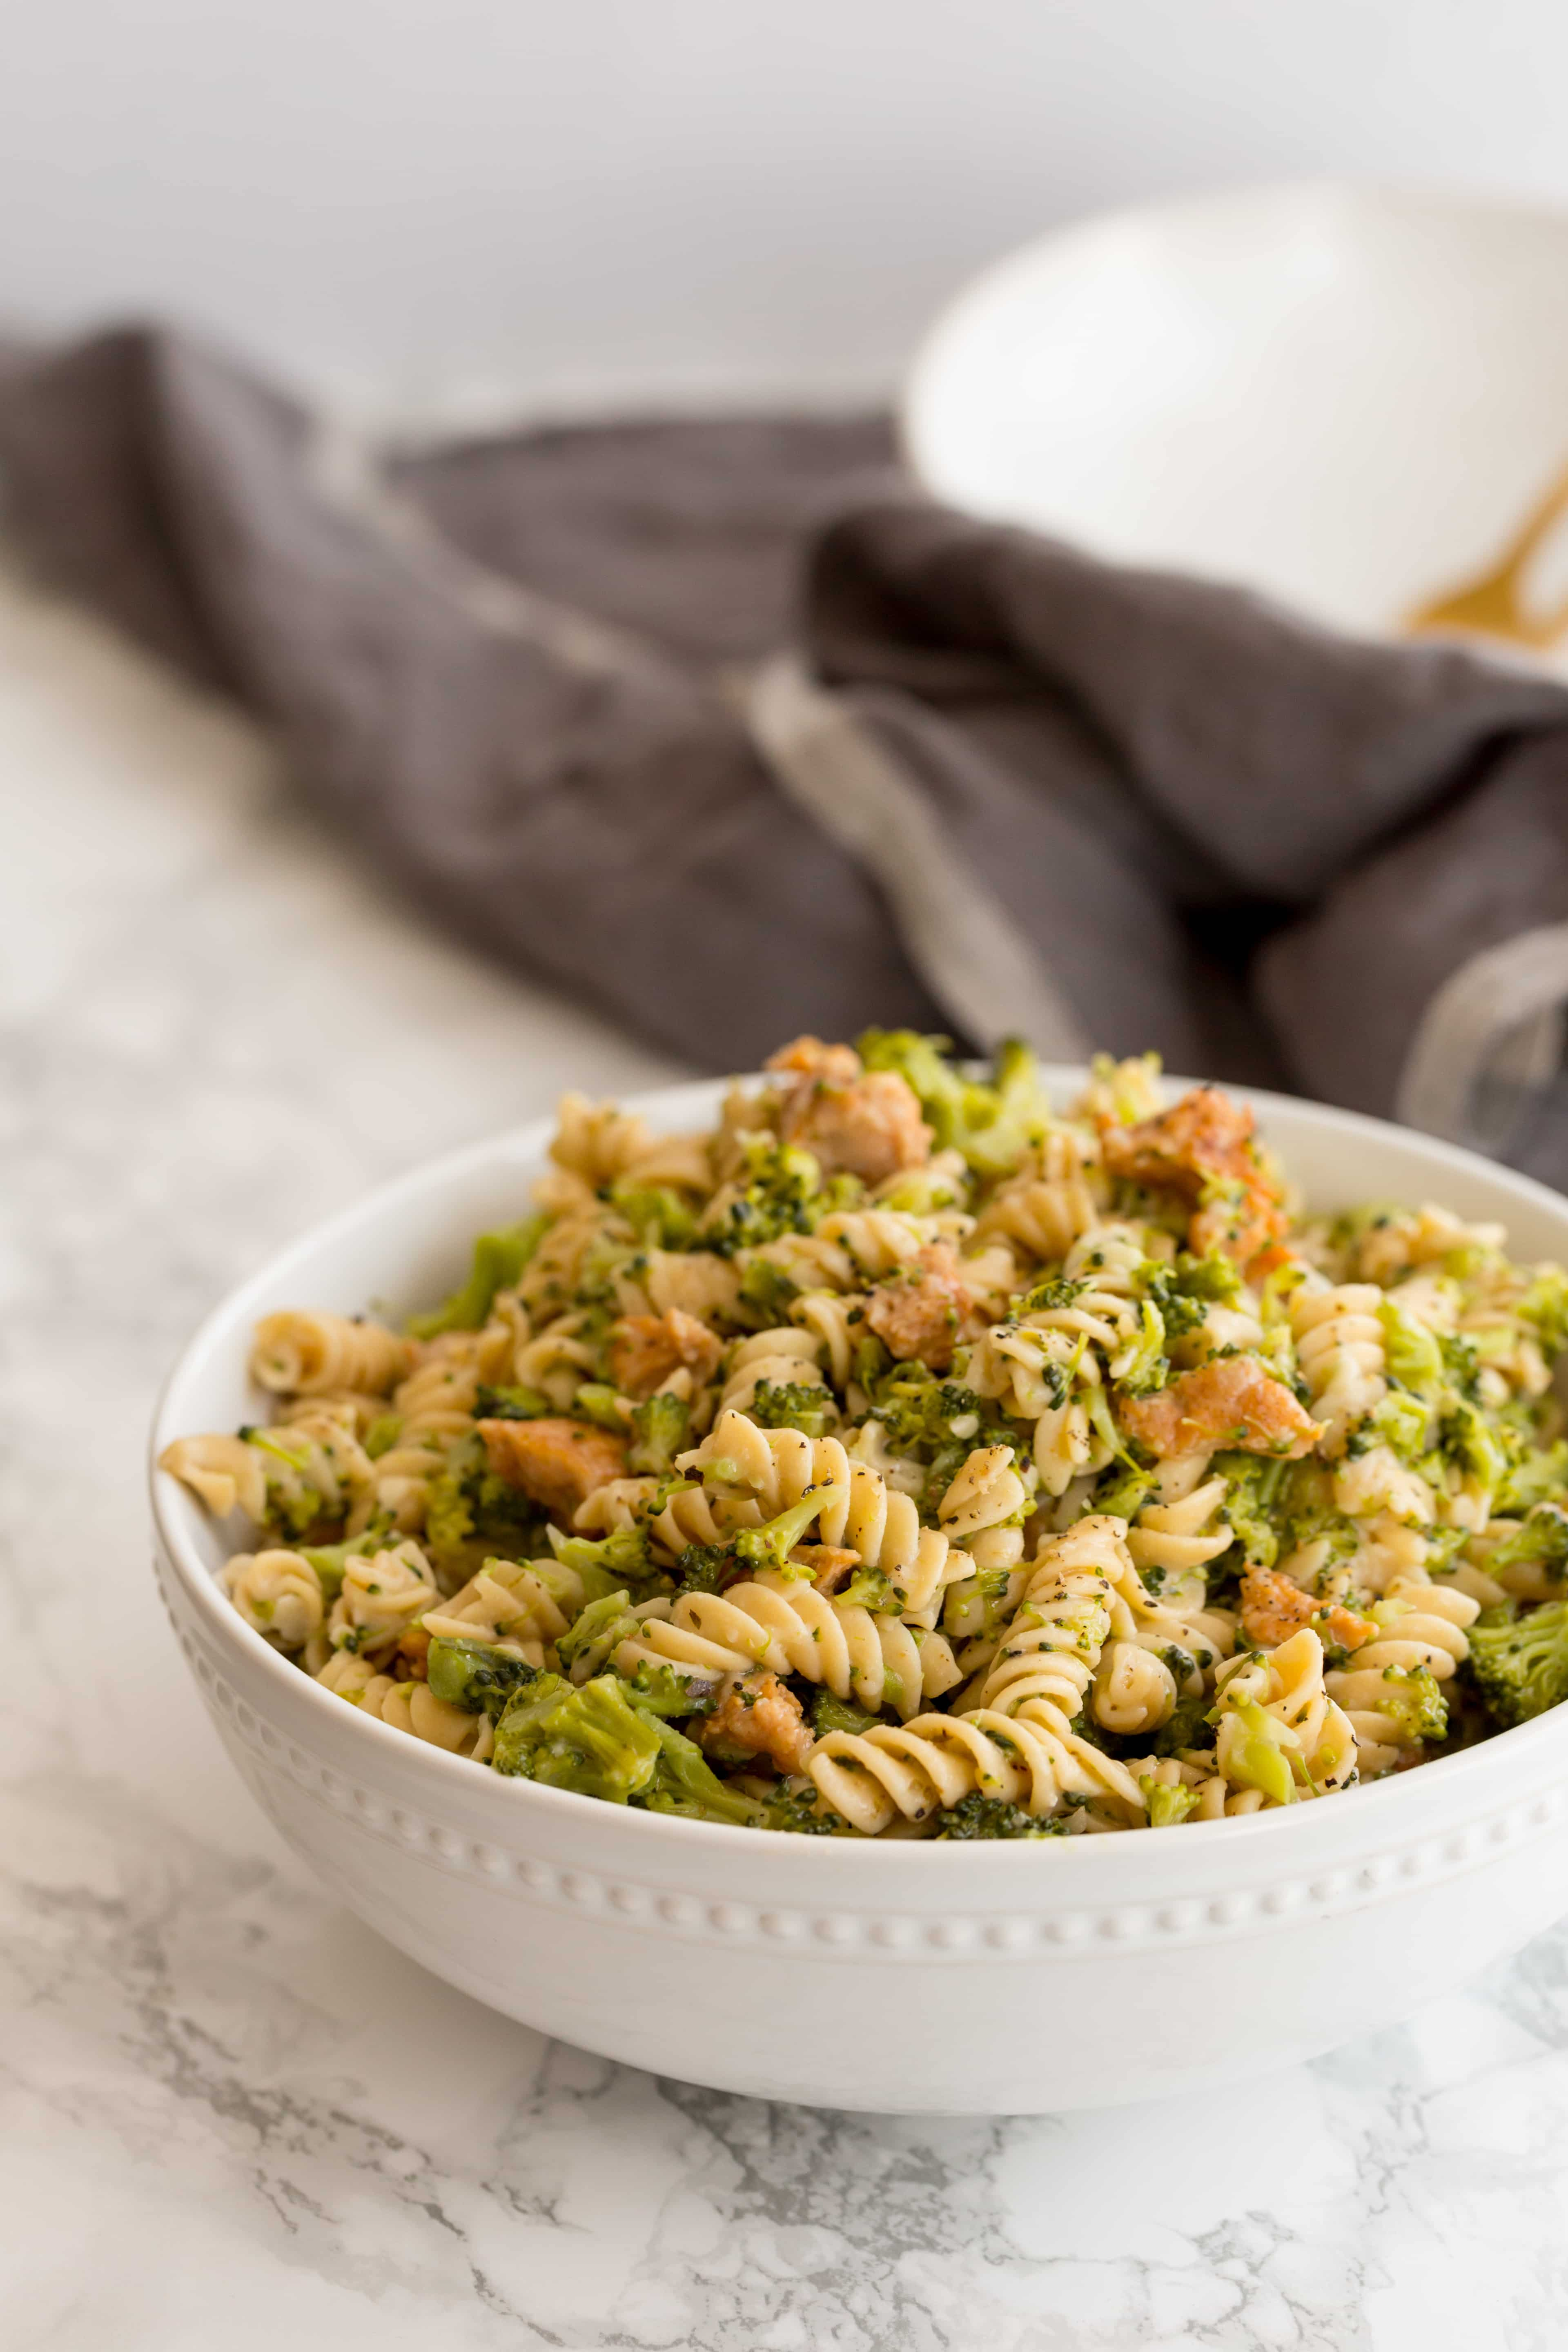 Chicken Sausage and Broccoli Pasta